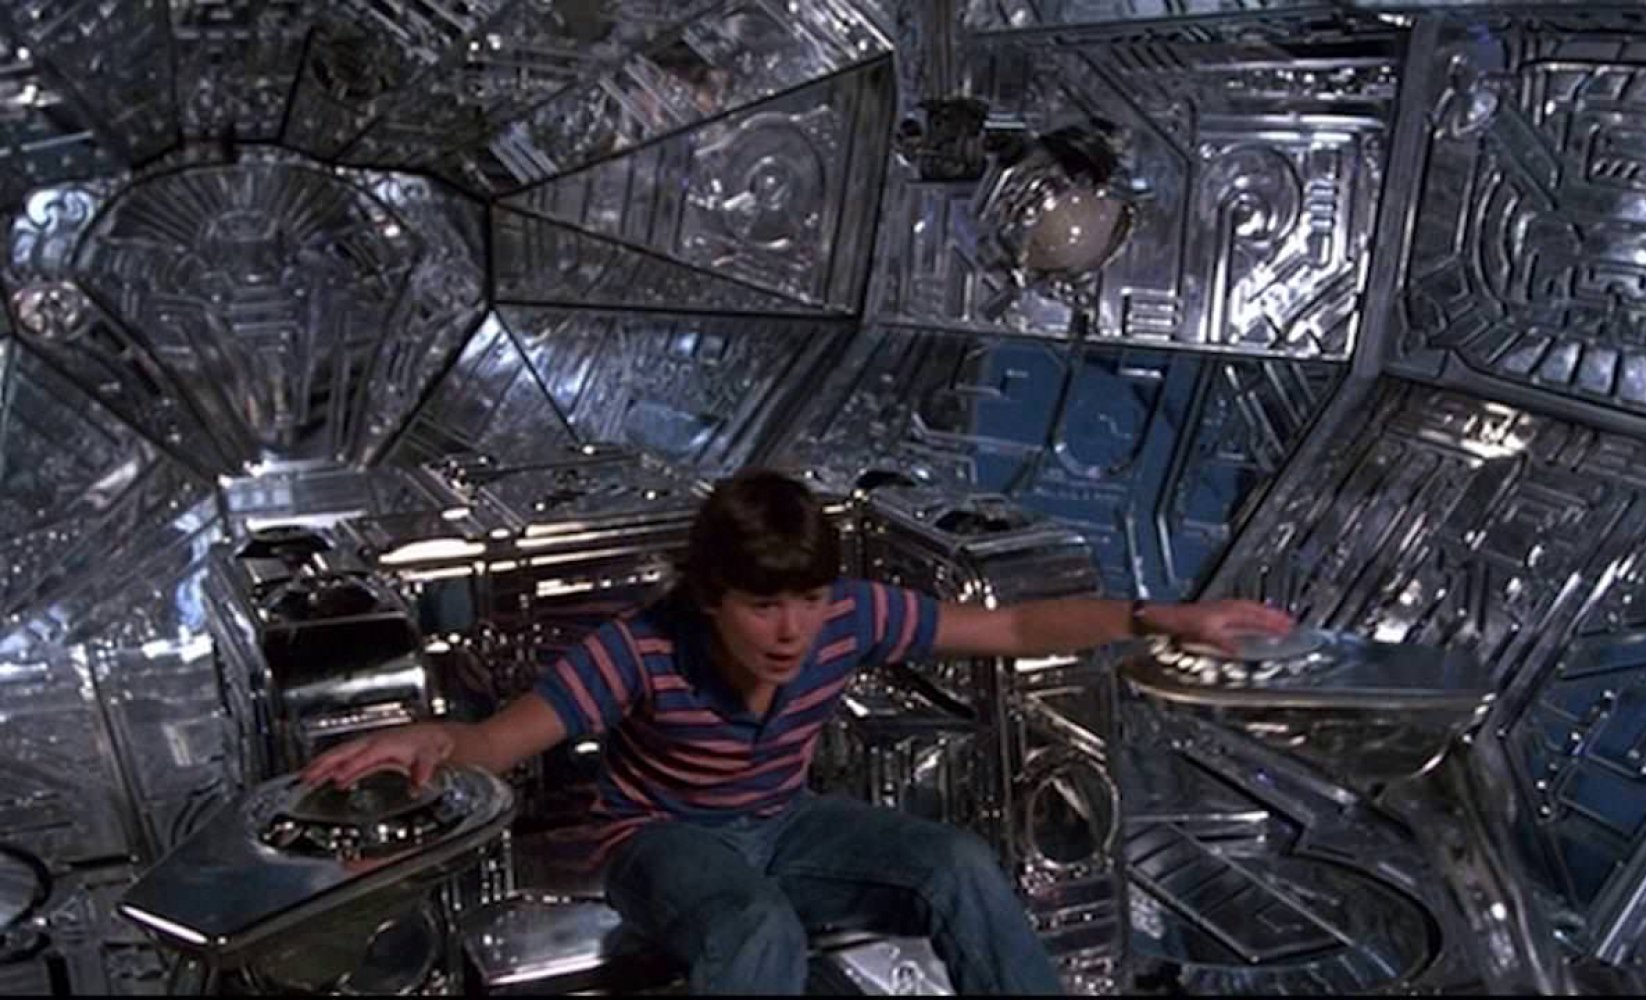 16c 21 Things You Might Not Have Realised About Flight Of The Navigator